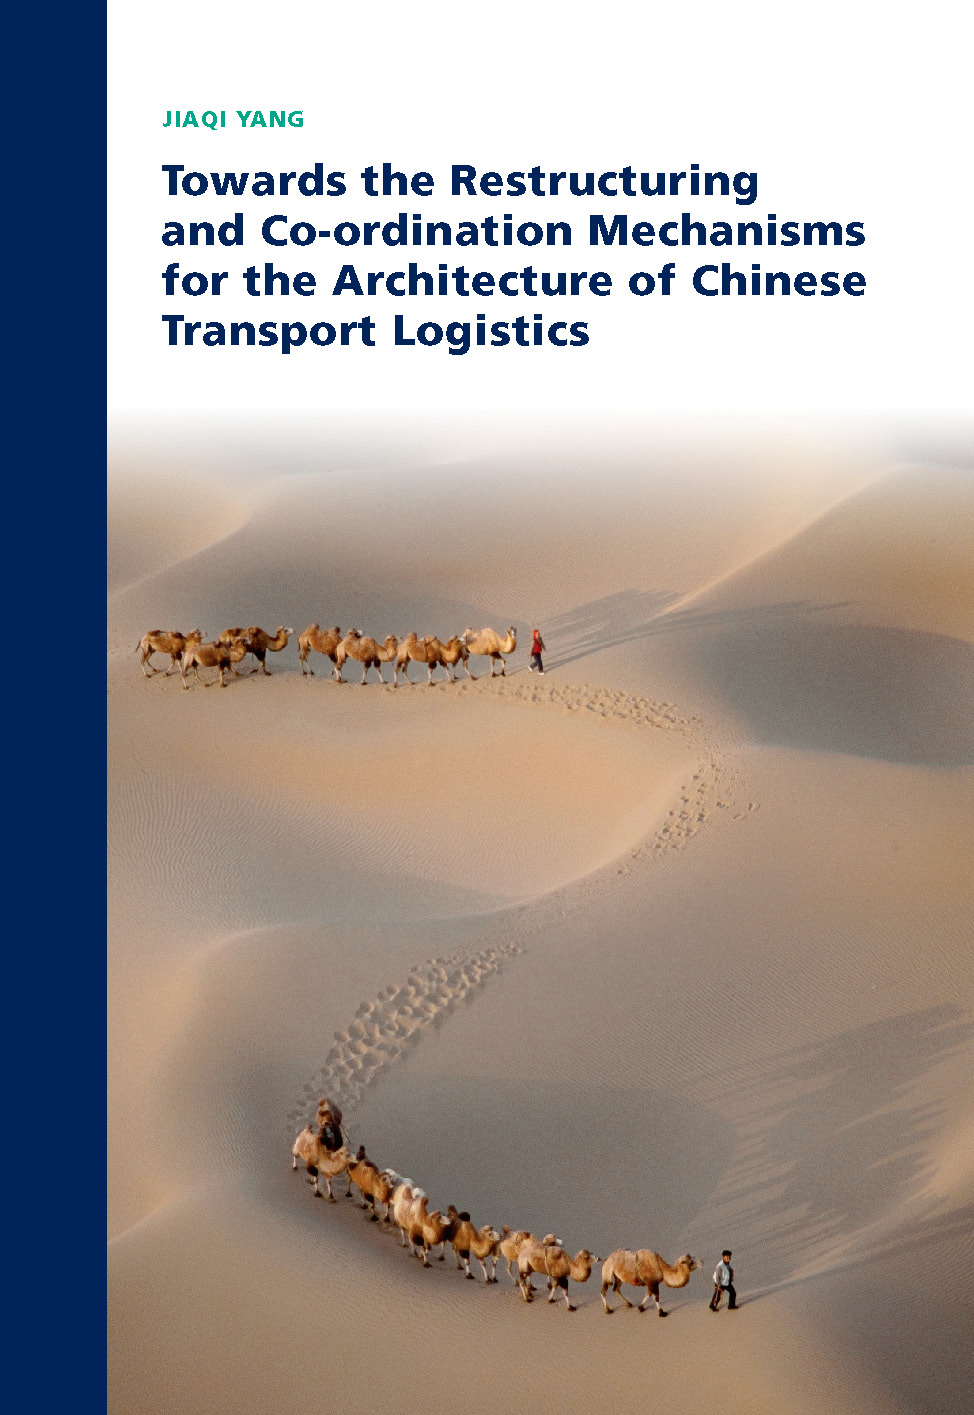 Towards the Restructuring and Co-ordination Mechanisms for the Architecture of Chinese Transport Logistics